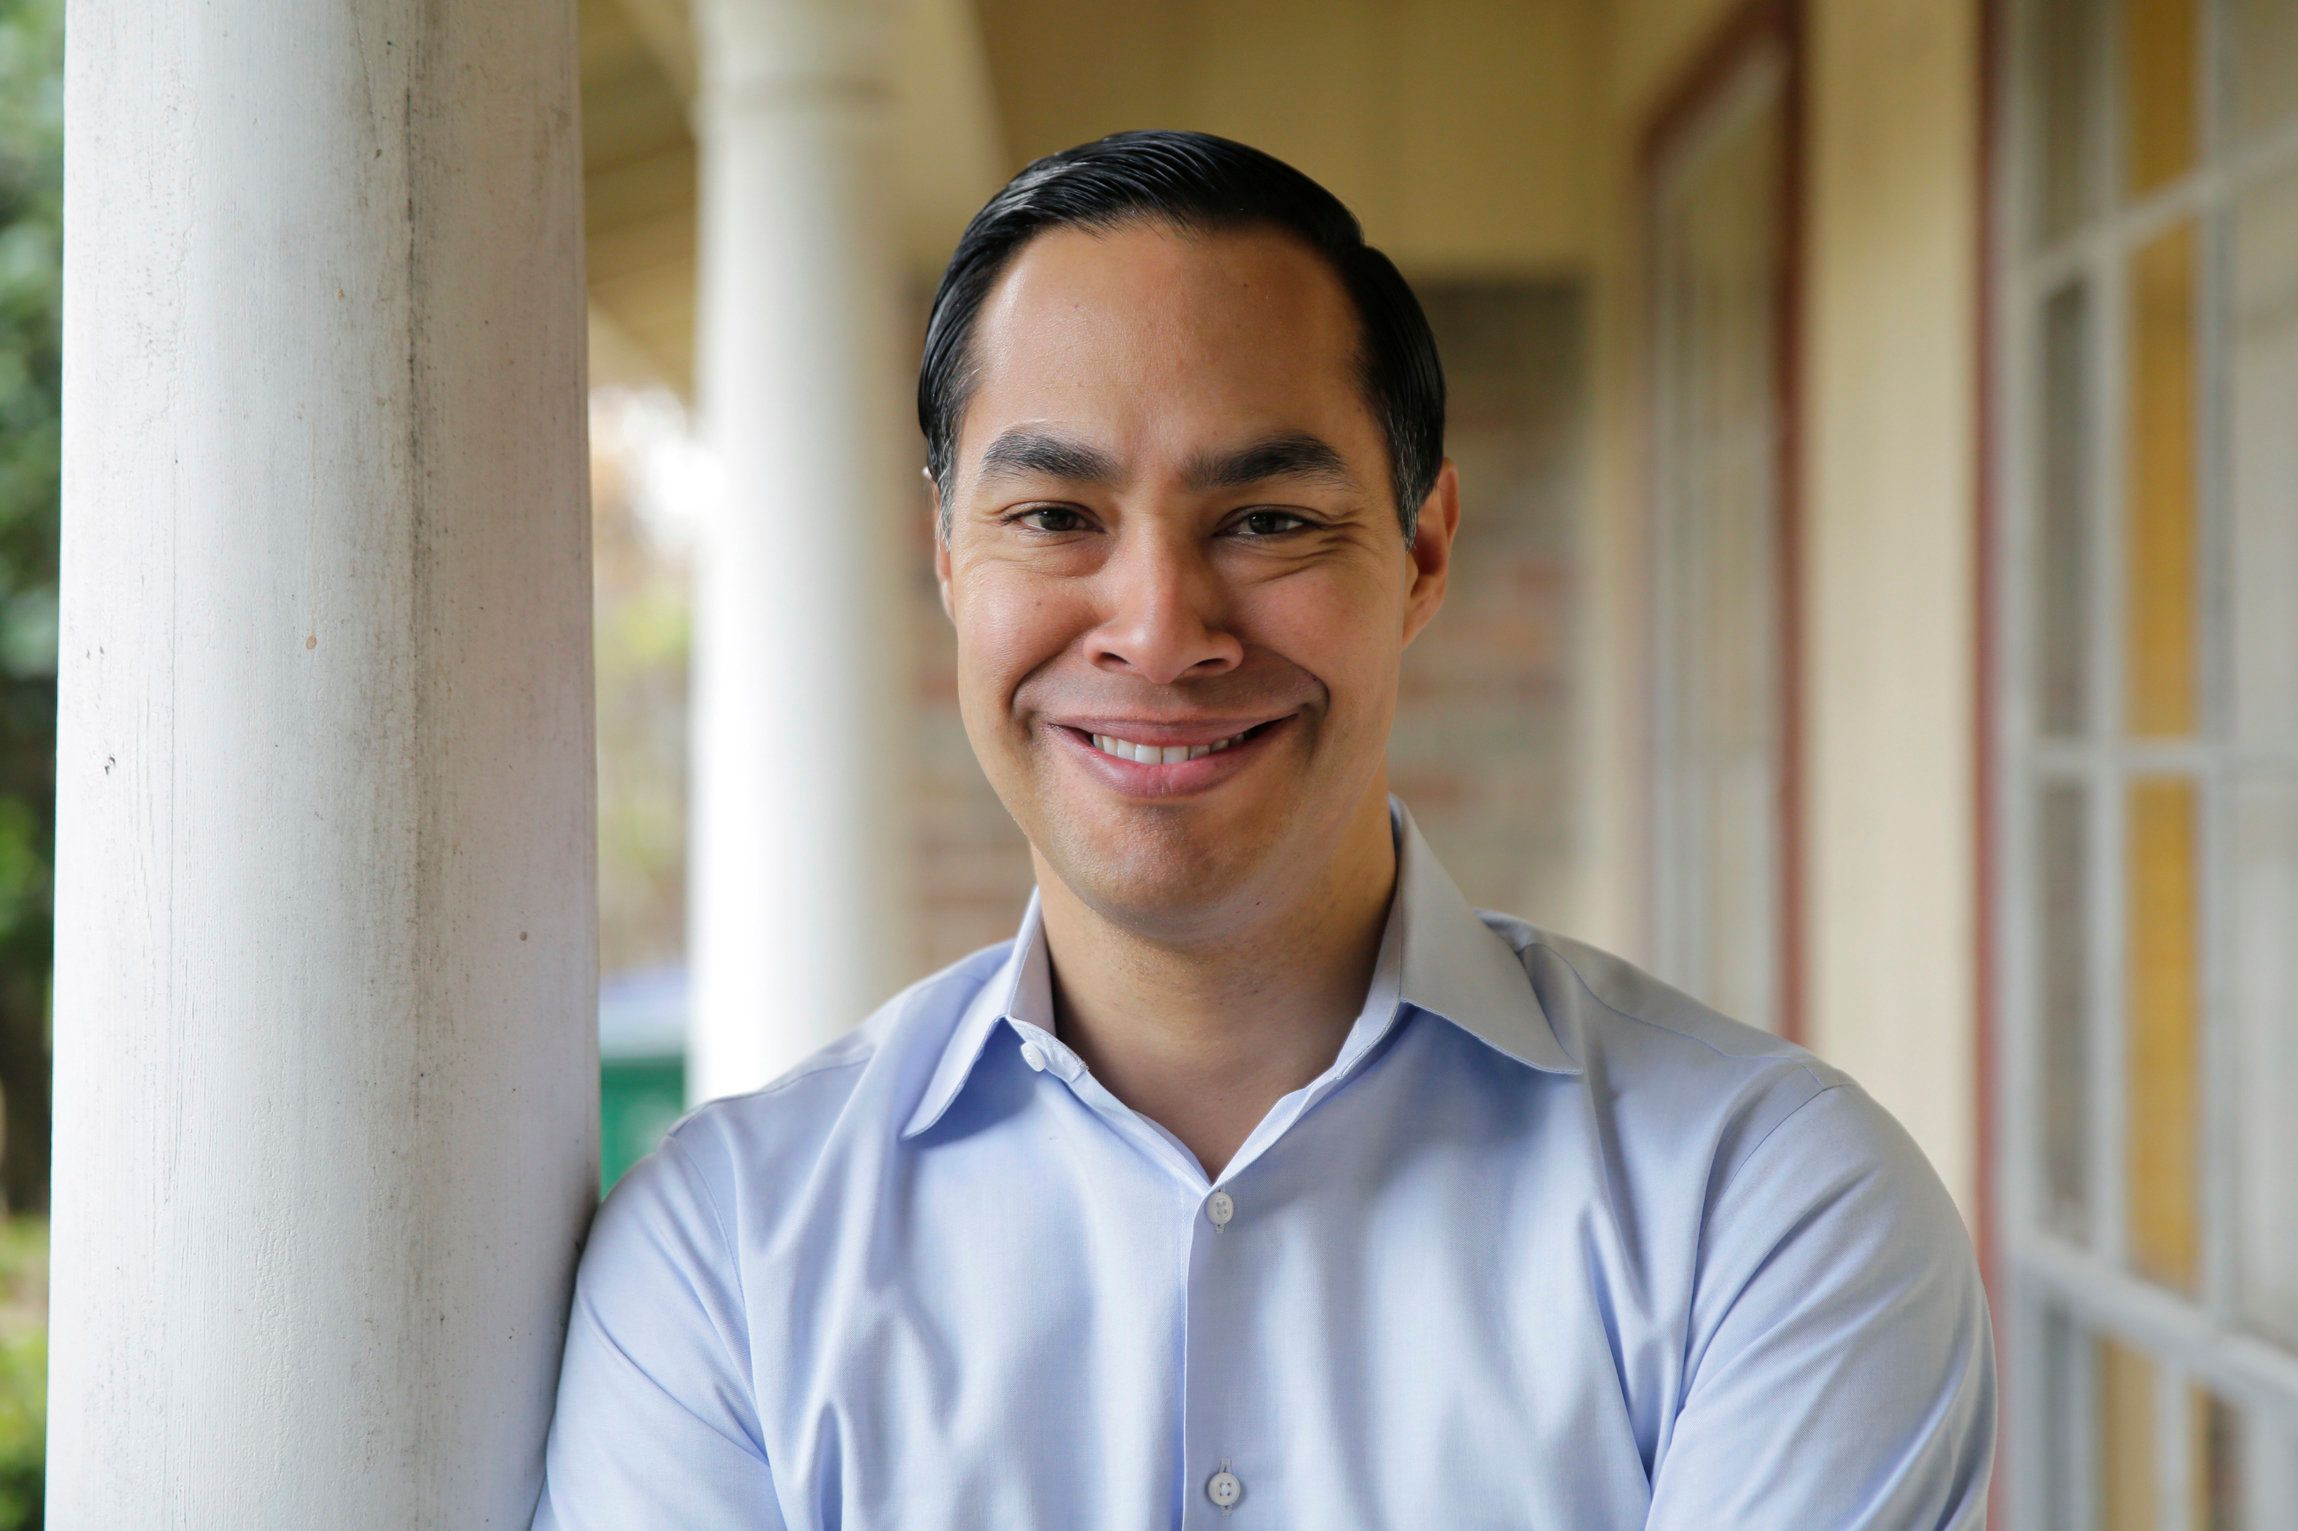 Julián Castro, who served in Barack Obama's Cabinet, is officially a 2020 presidential contender.